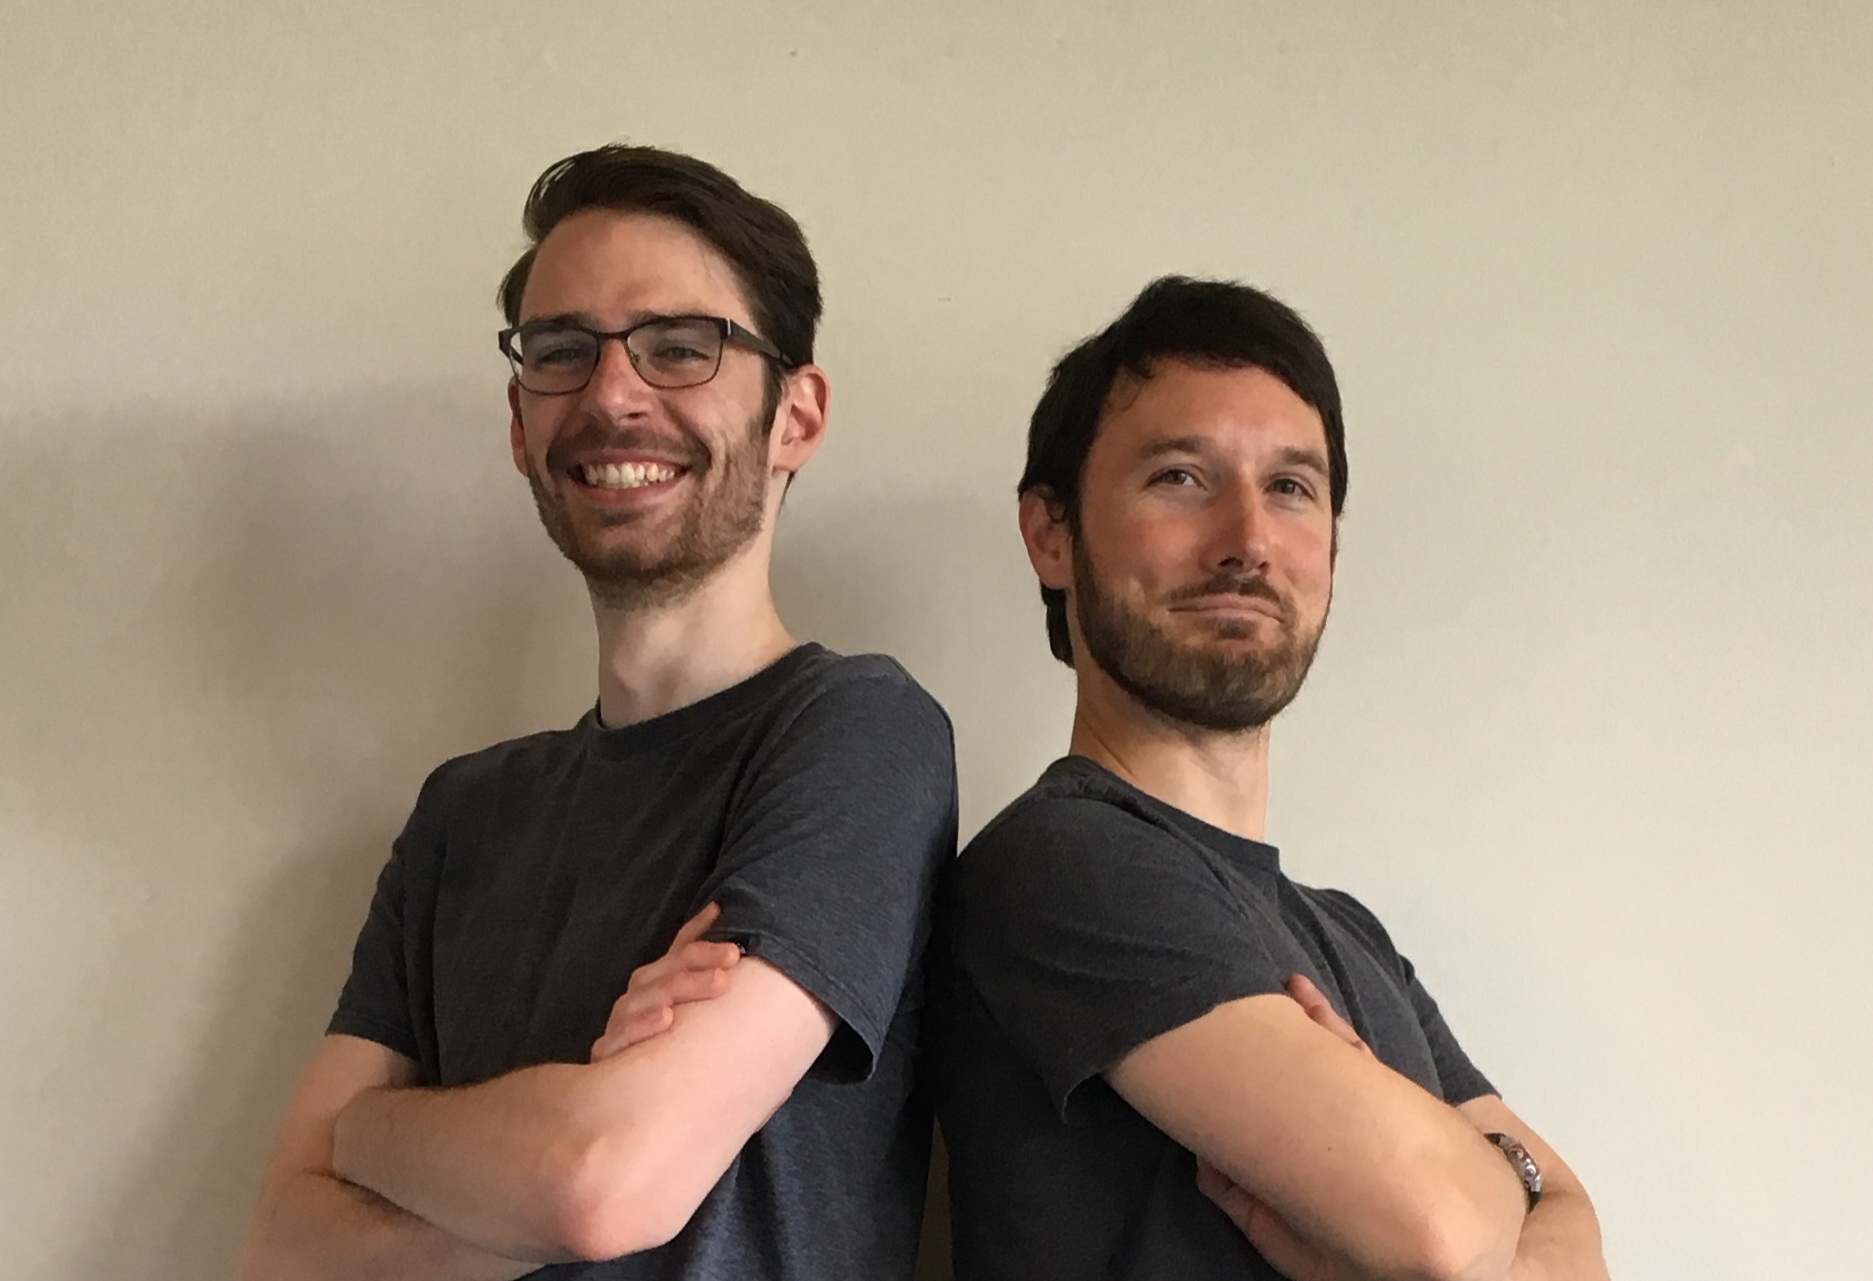 Mitchell Graw (l) and Jerrod Bondy (r) are all set to lead 2 exciting theatre camps this summer